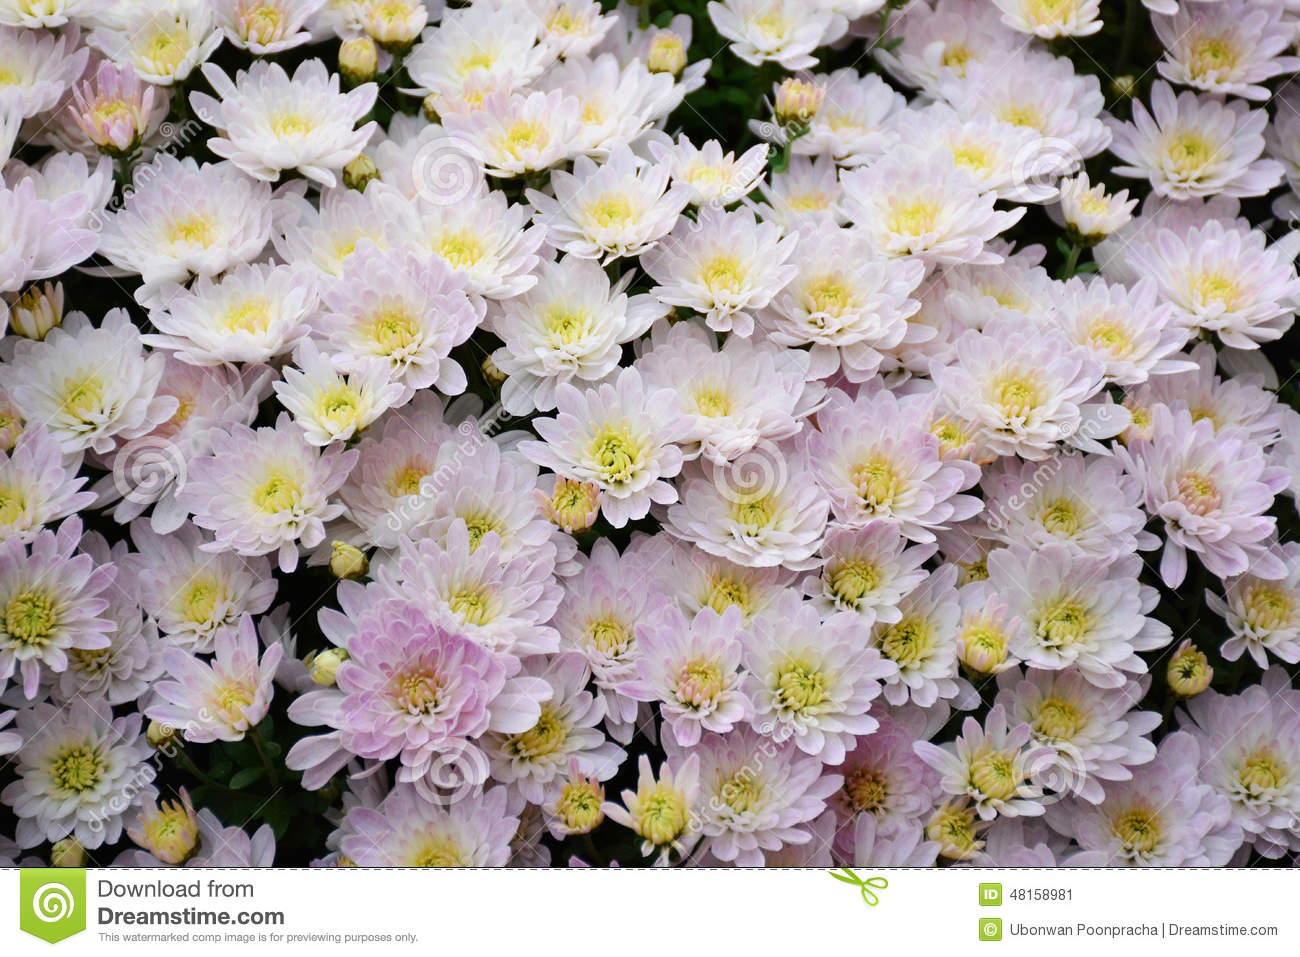 White mums flower chrysanthemum stock image image of decoration white mums flower chrysanthemum mightylinksfo